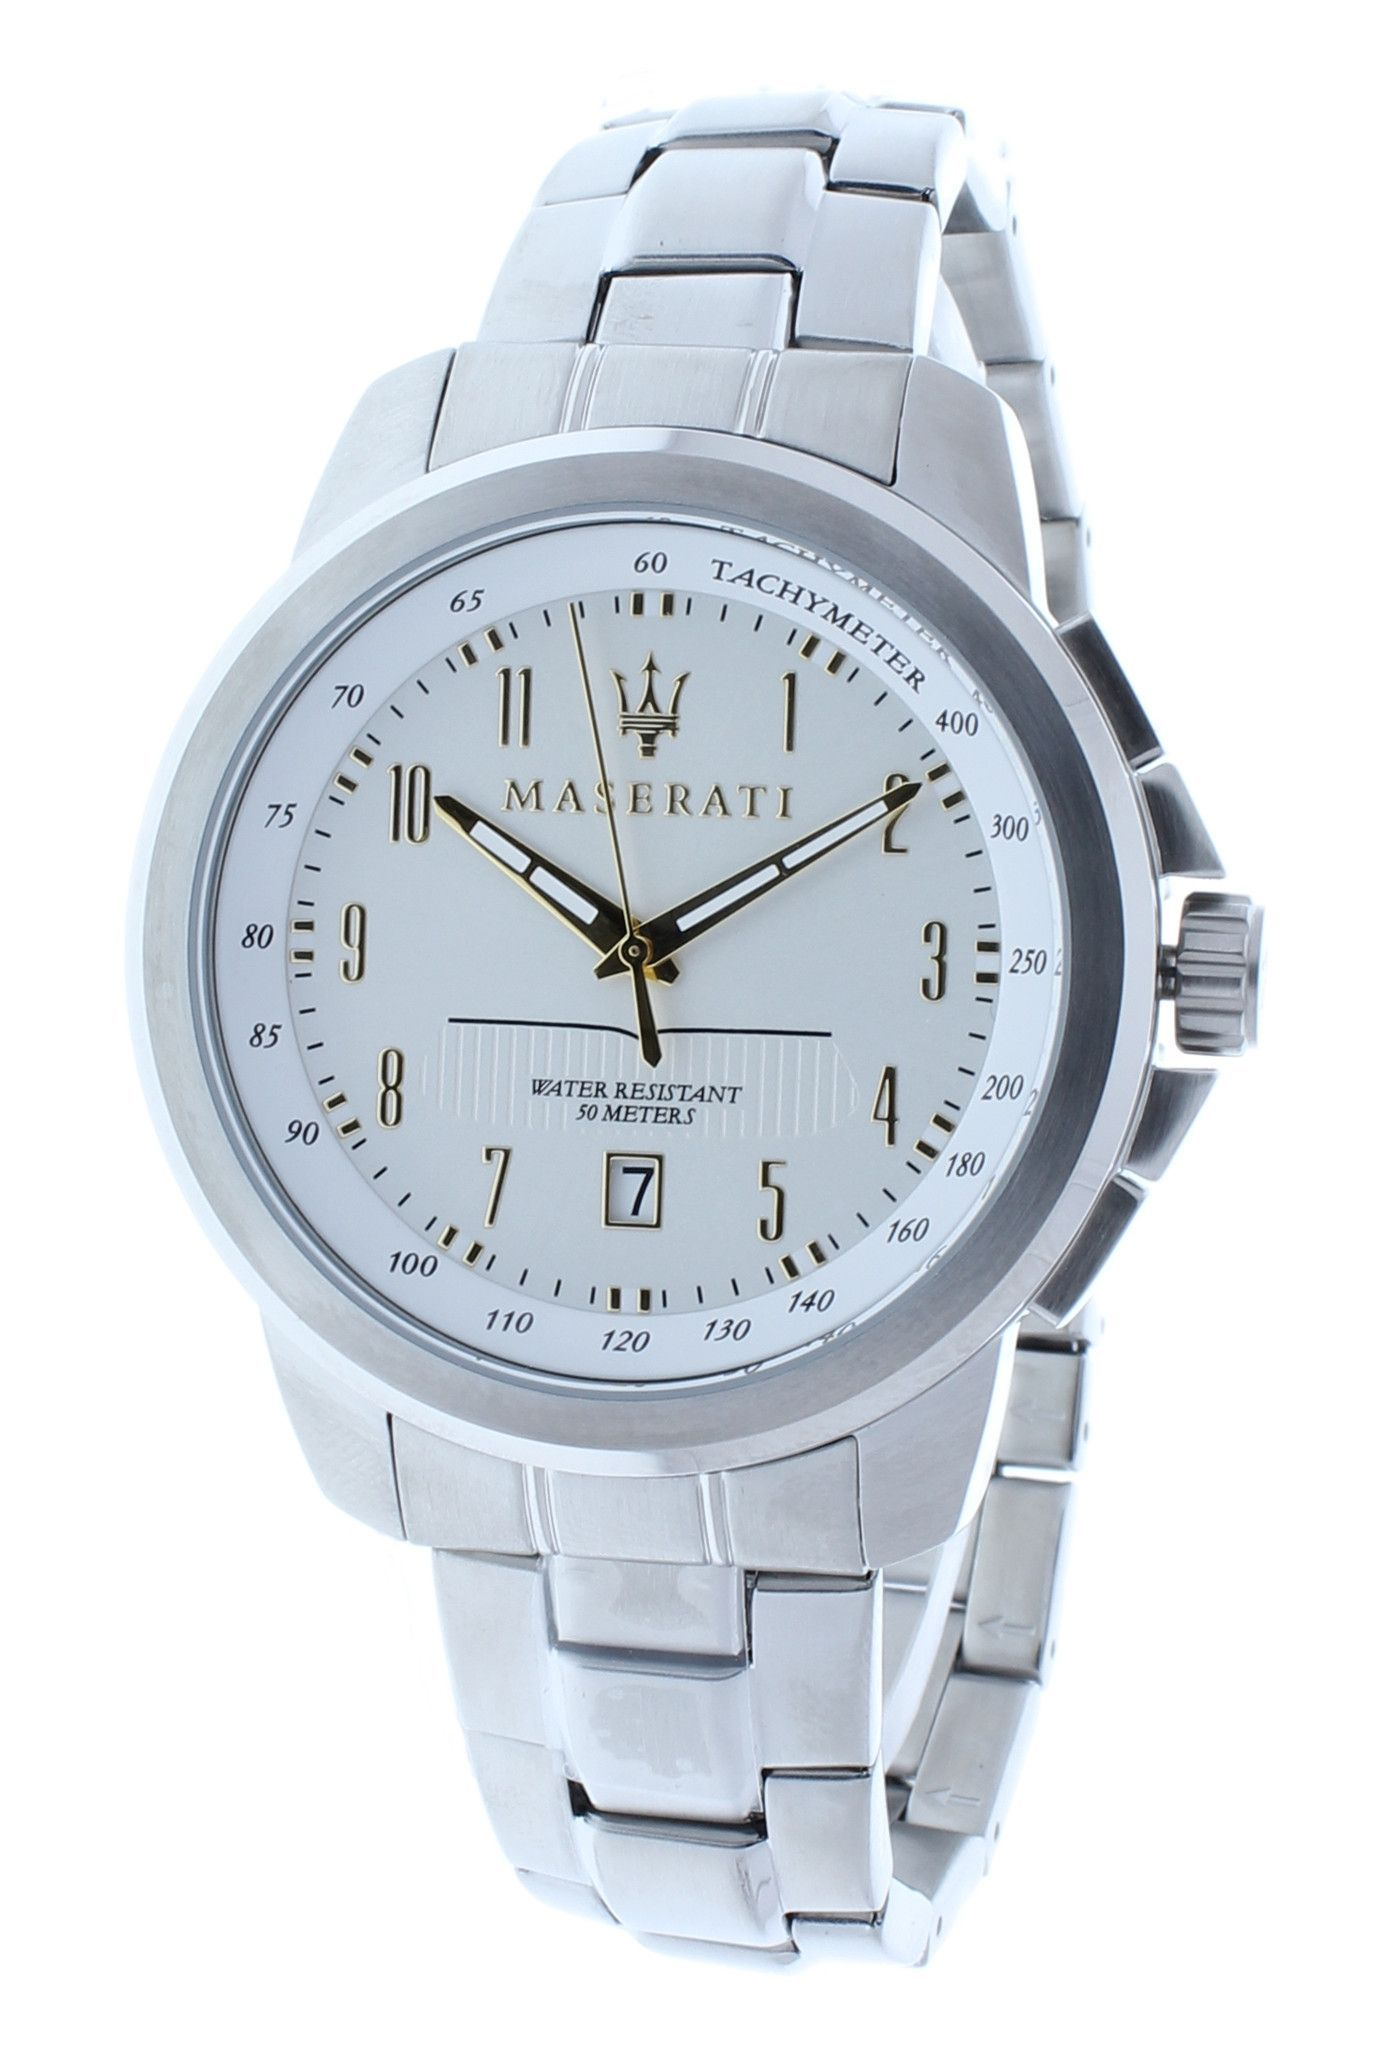 Maserati R8853121001 Men's Quartz White Dial Watch Stainless Steel Case Date